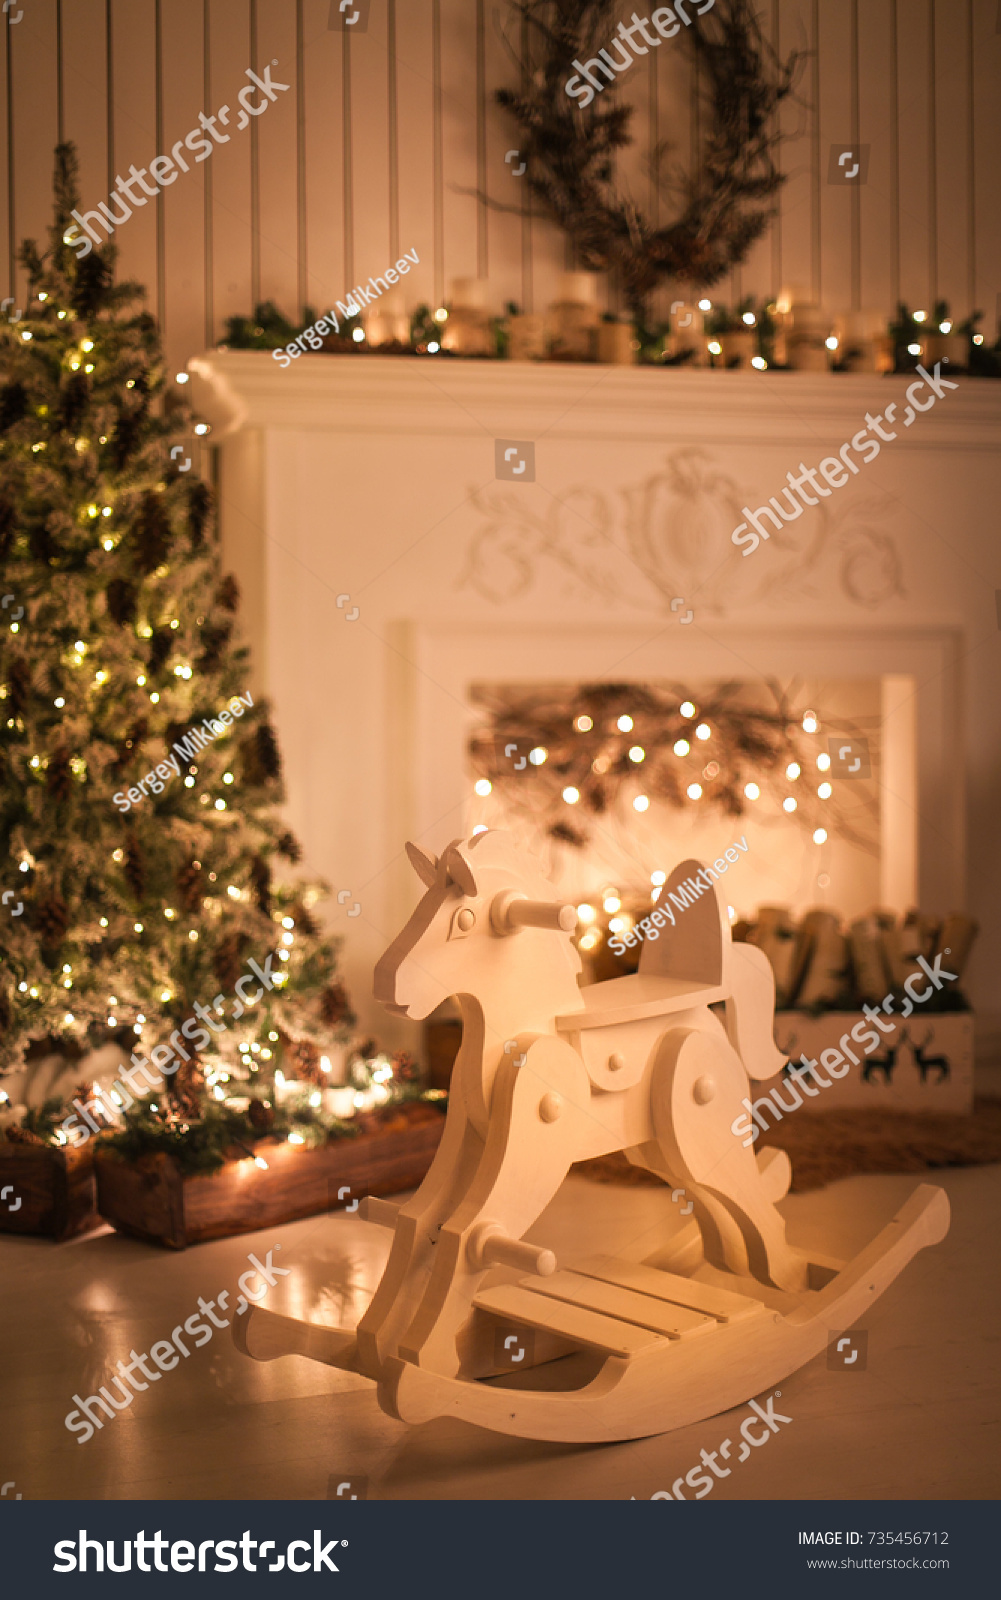 rocking horse on the background of christmas decorations